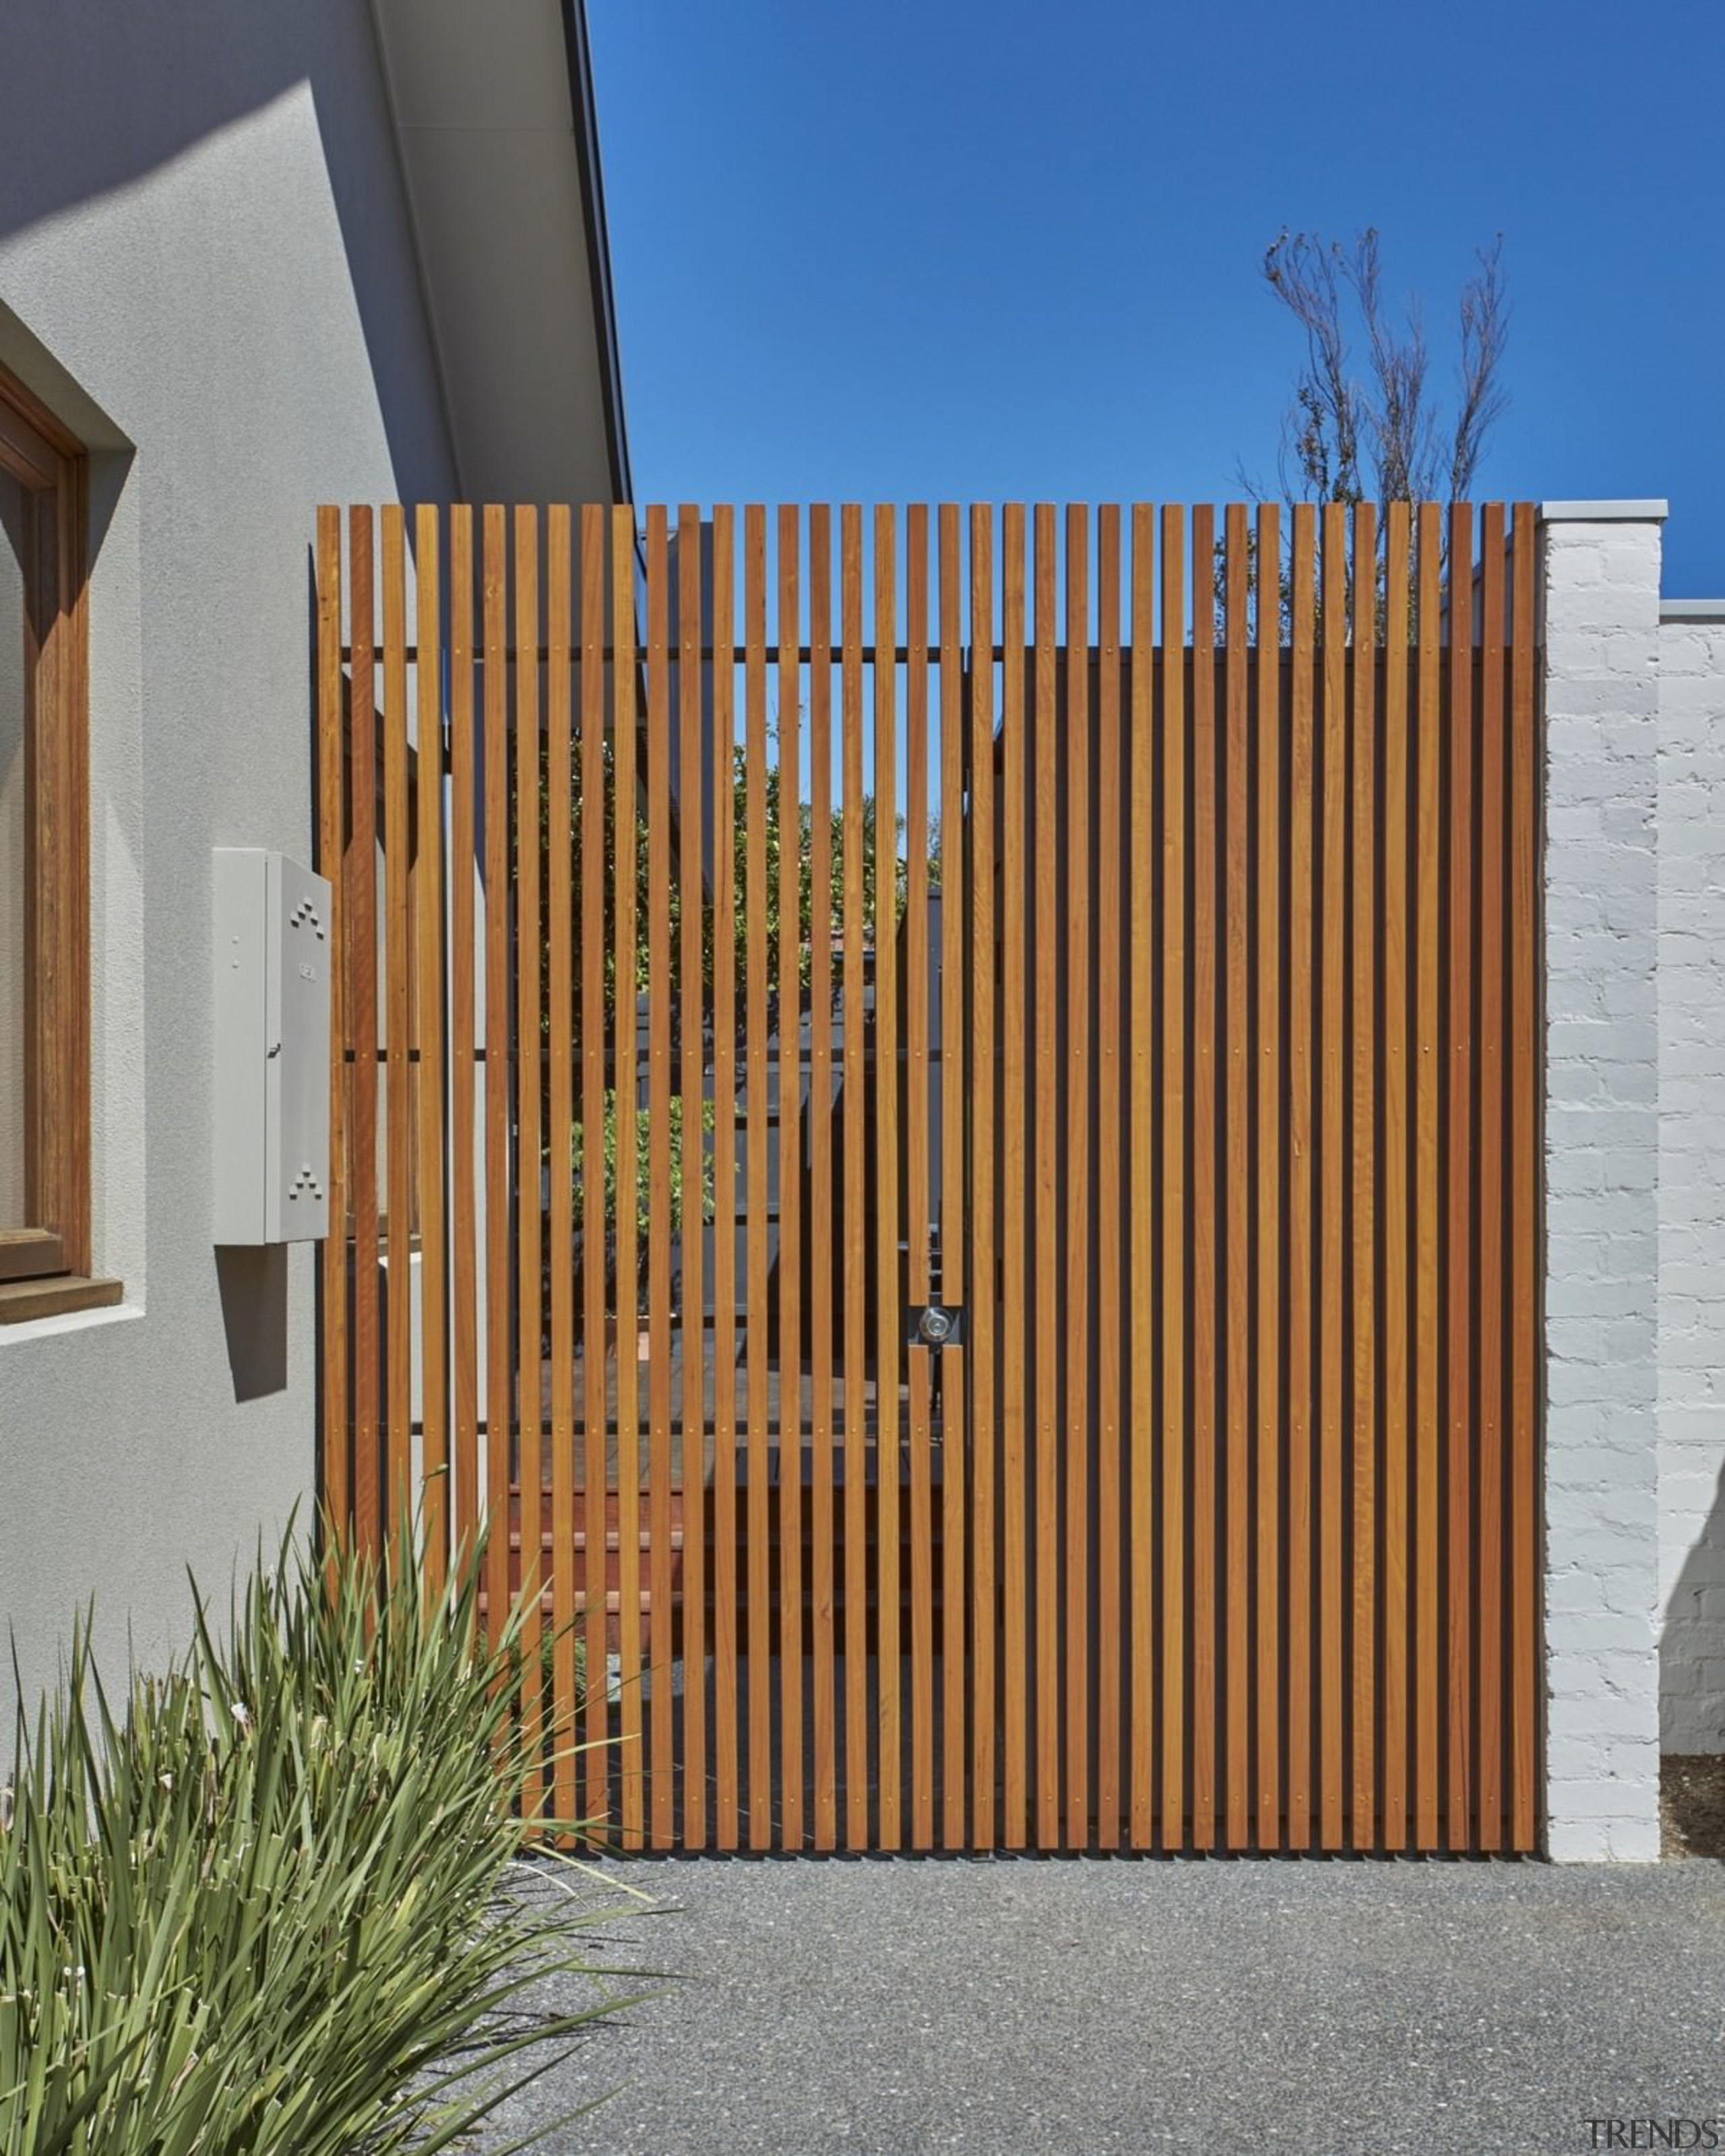 This slat fence is an interesting touch - architecture, facade, fence, gate, picket fence, siding, wood, wood stain, brown, gray